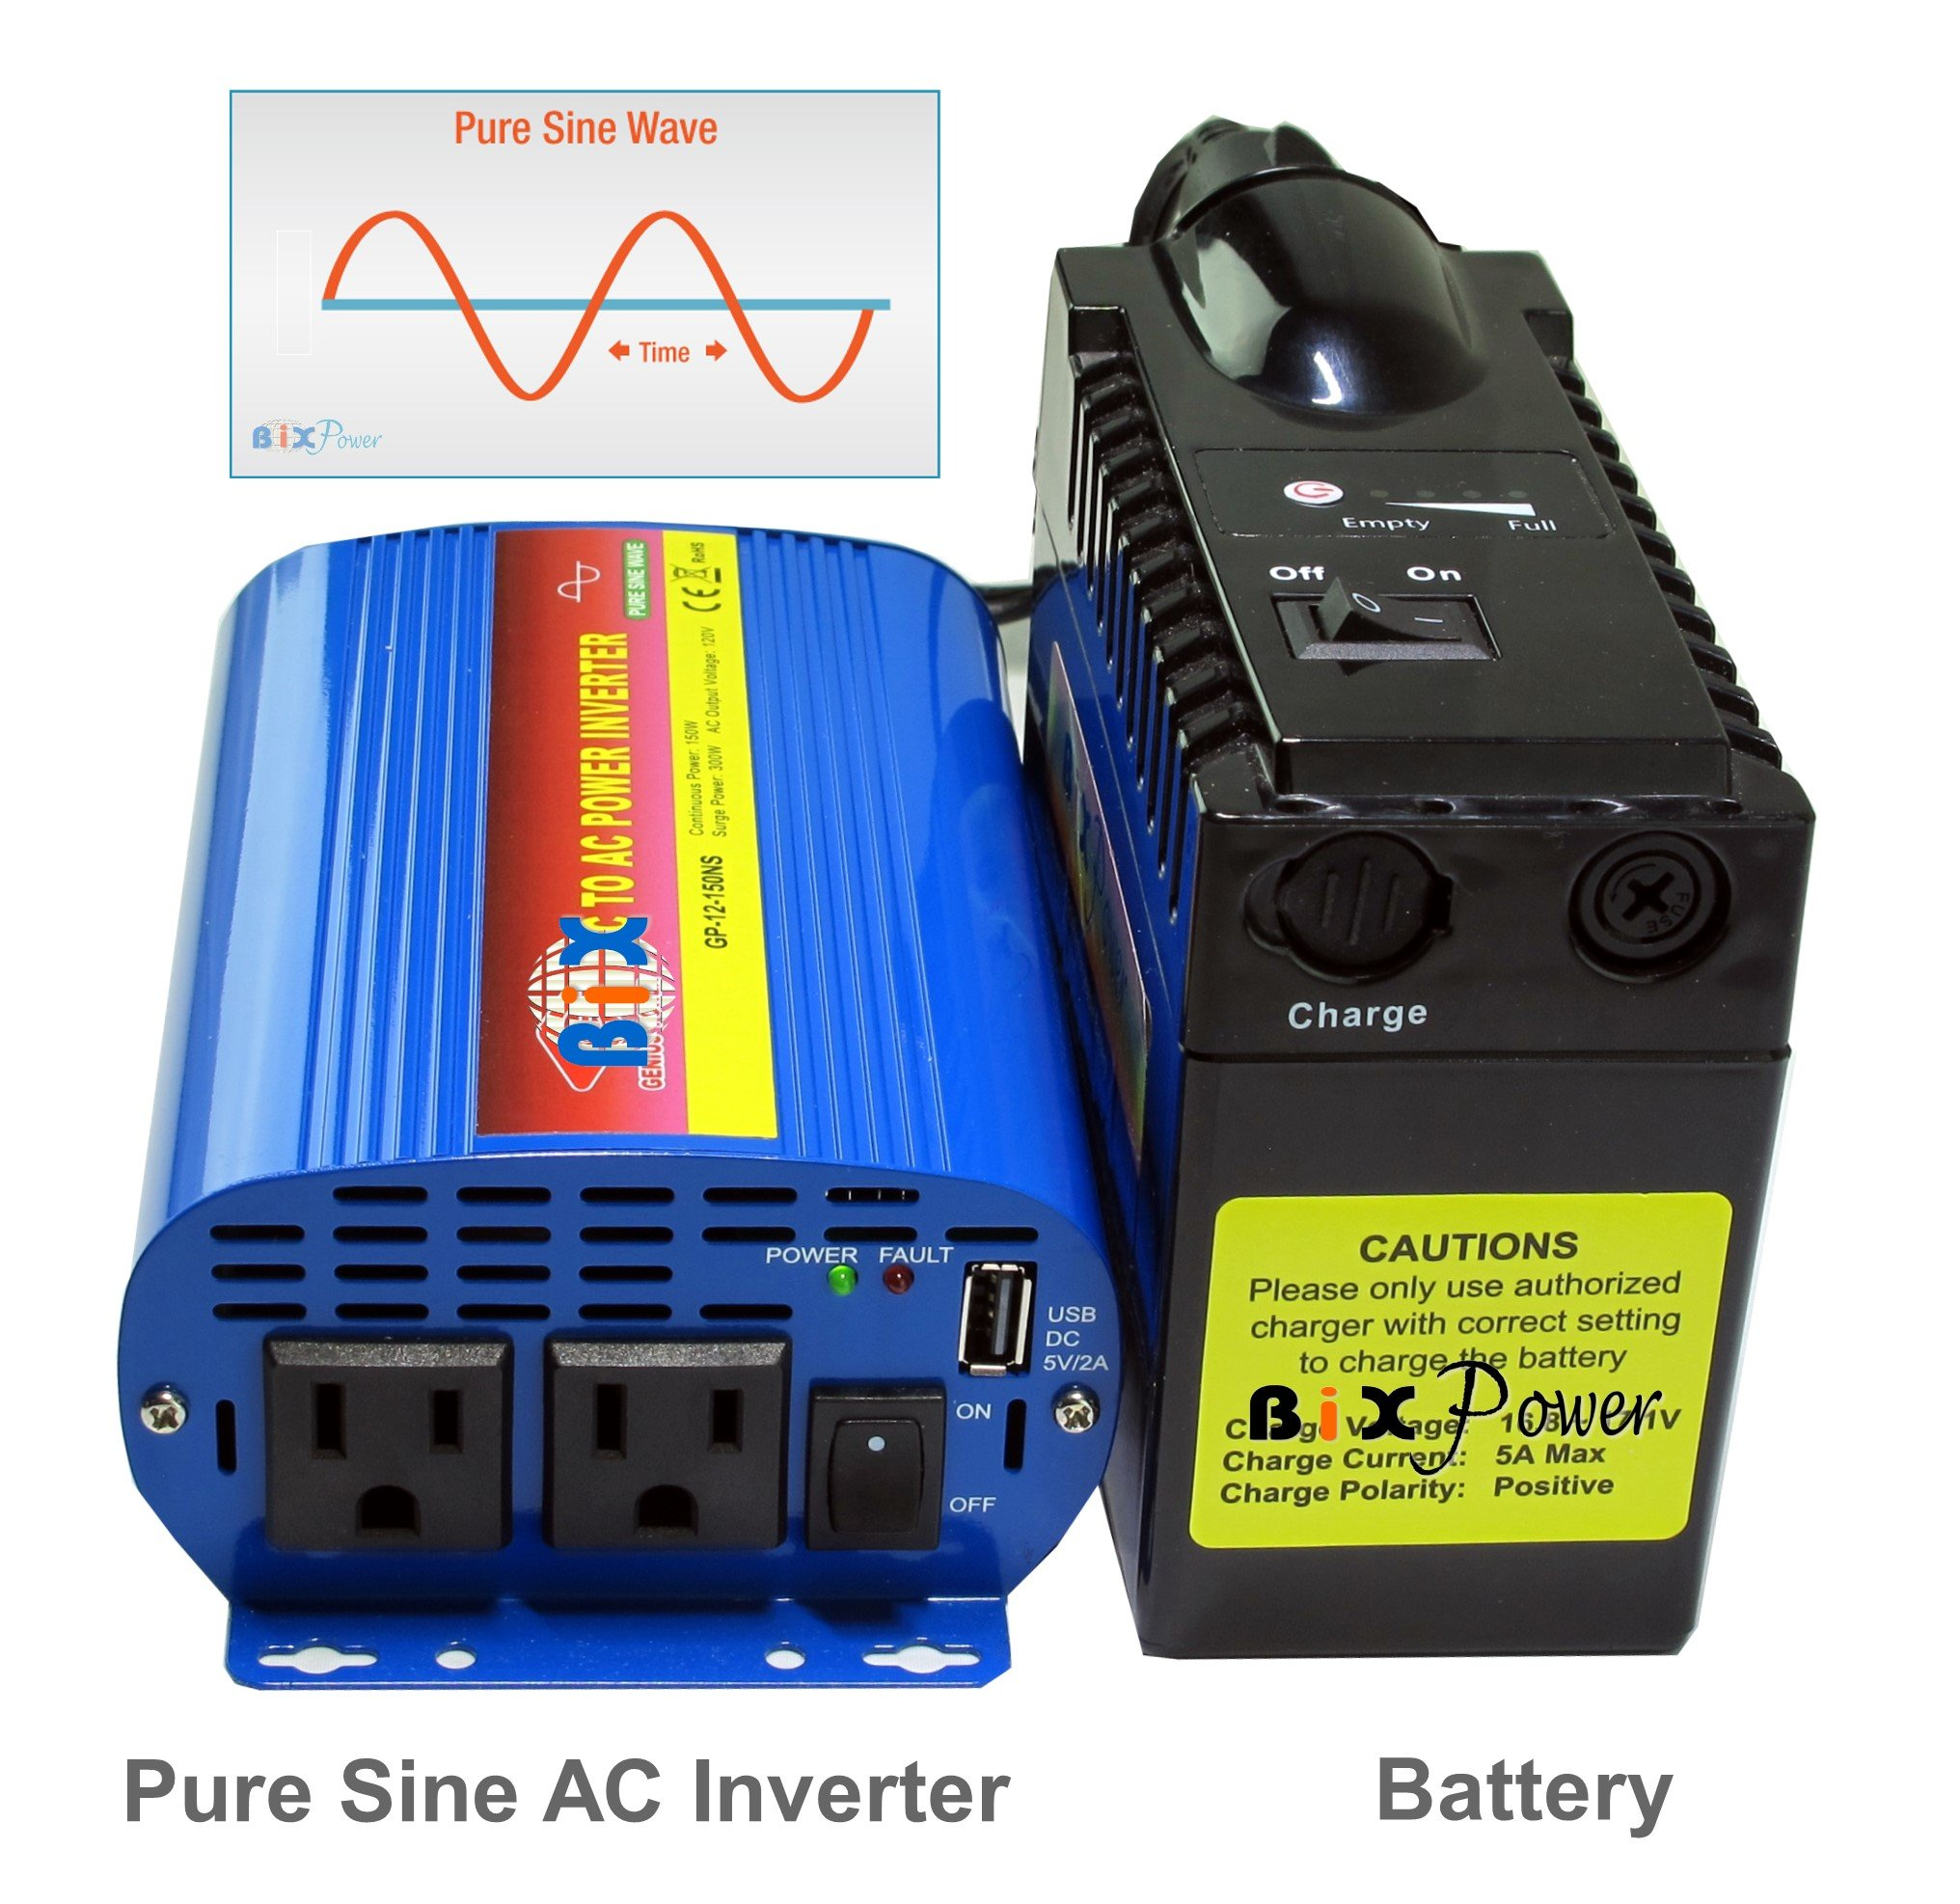 BiXPower XP200 Pure Sine AC Power Pack - 150W Pure Sine Wave AC Power Inverter with 192Wh Lithium Ion Battery